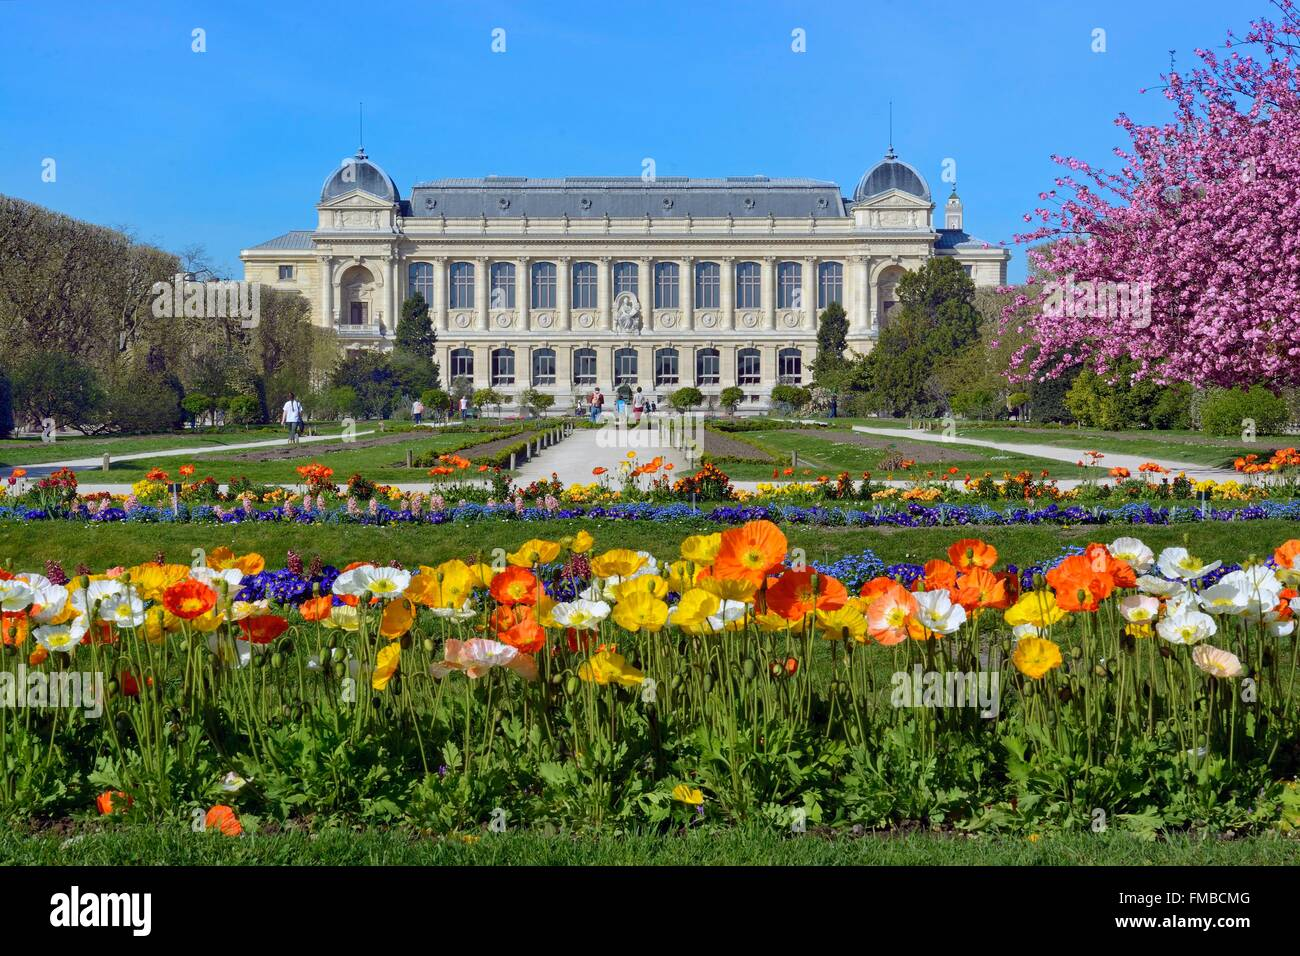 France, Paris, Museum of Natural History, the Plants Gardens and the Grand Gallery of Evolution - Stock Image